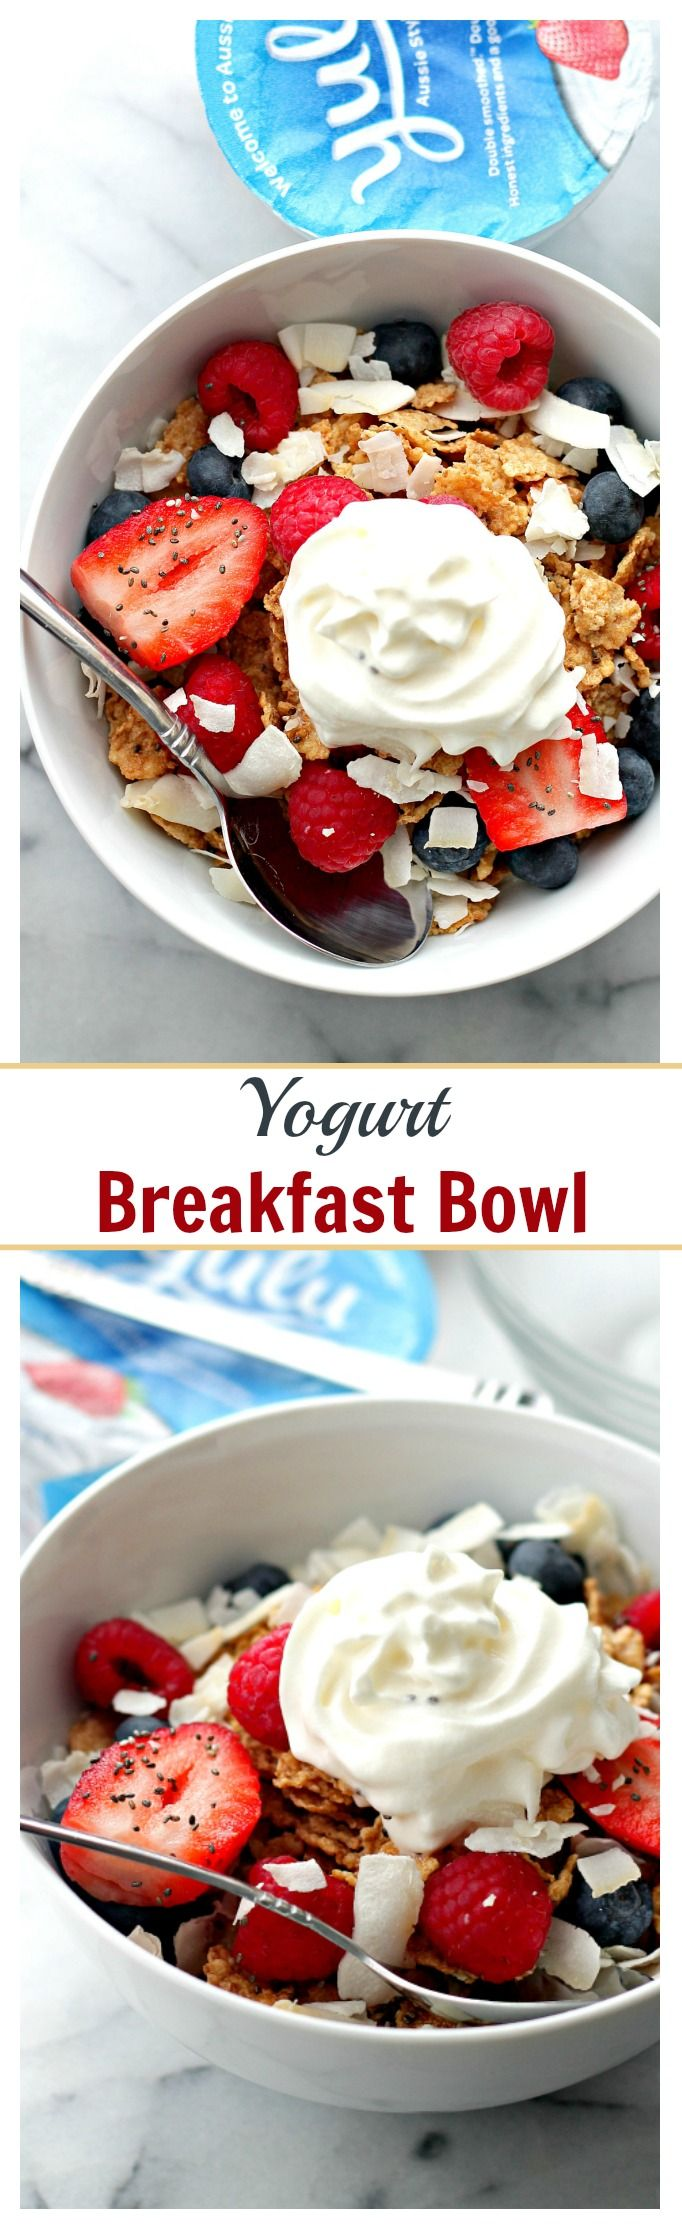 Yogurt Breakfast Bowl | www.diethood.com | Make your favorite morning meals more nutritious with this protein-packed, berry-loaded breakfast bowl. #AussieStyle